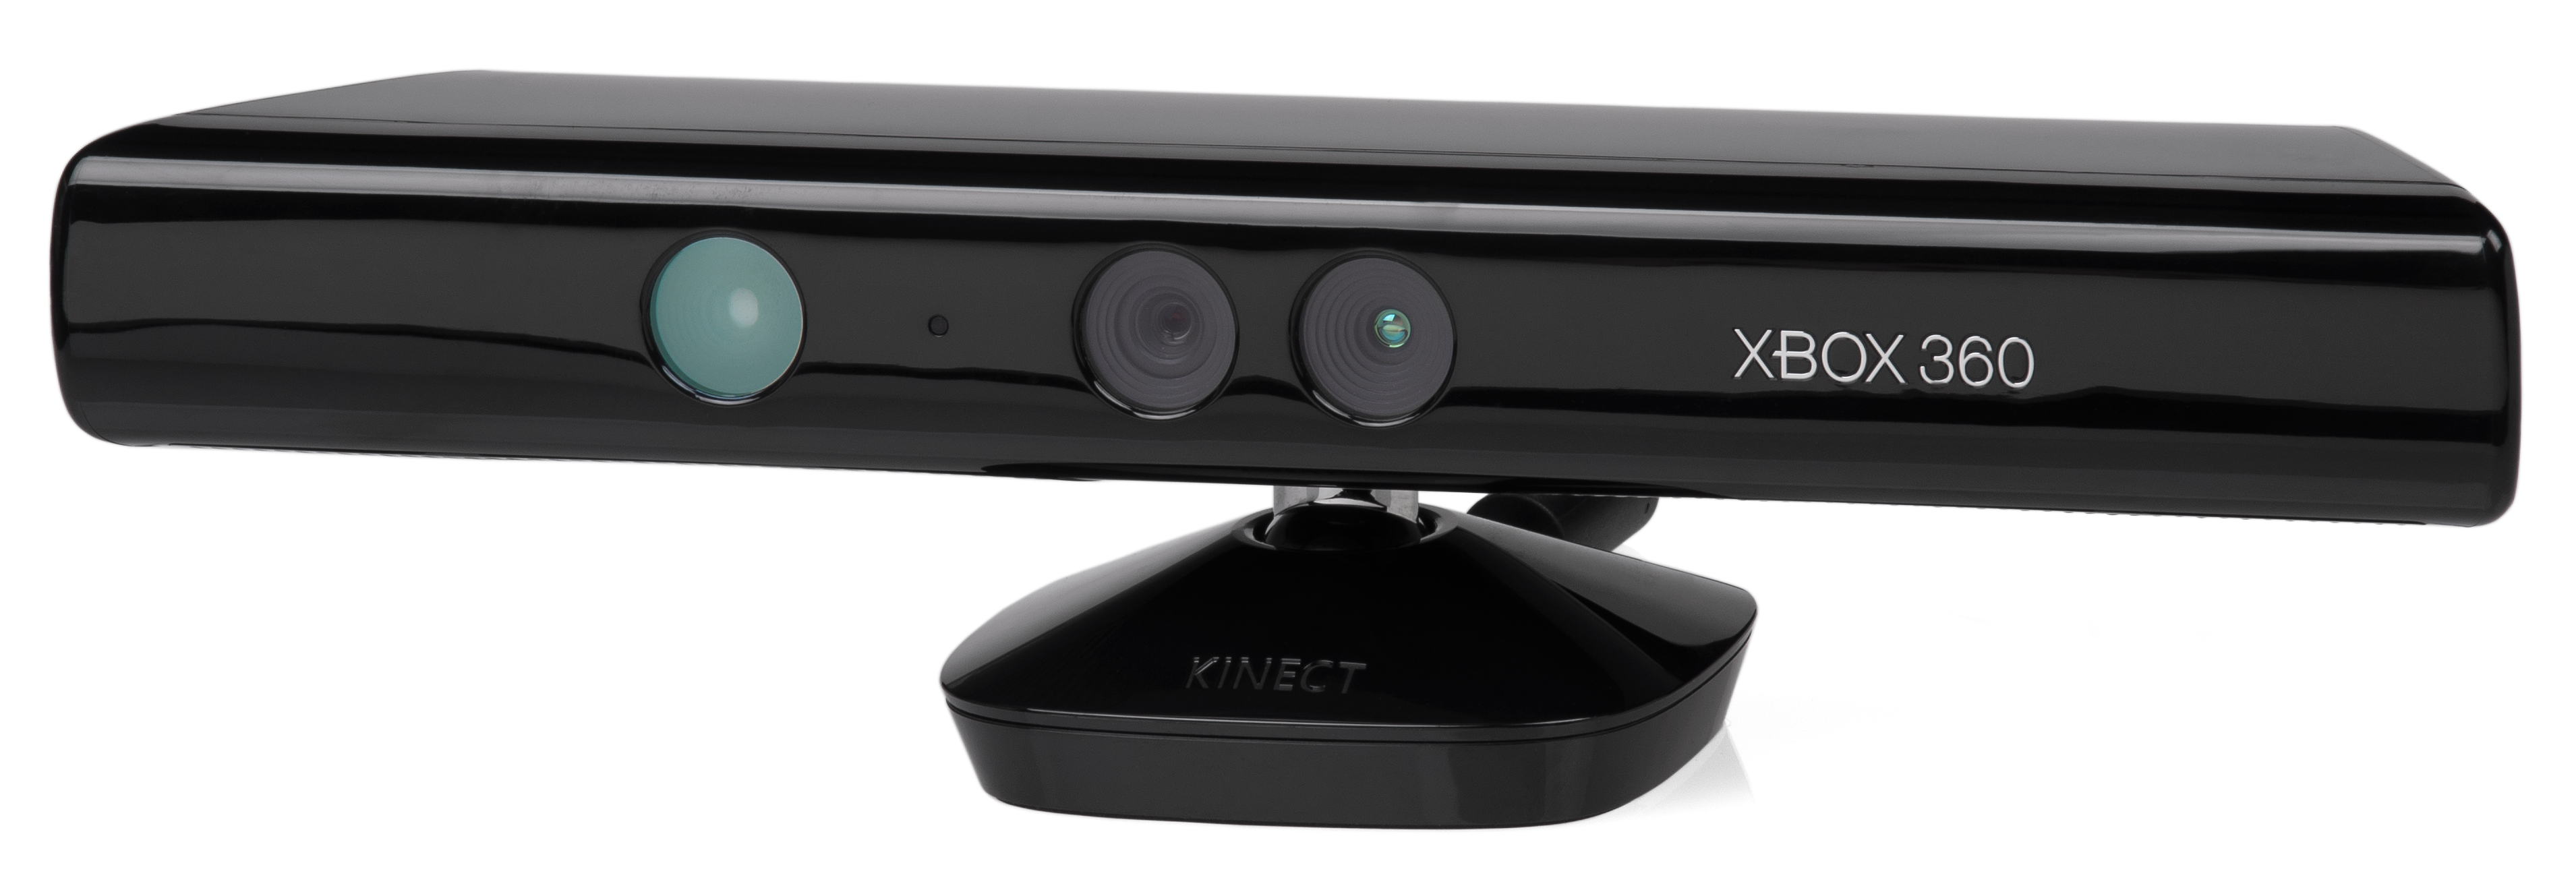 Microsoft Kinect for Xbox 360. By Evan Amos